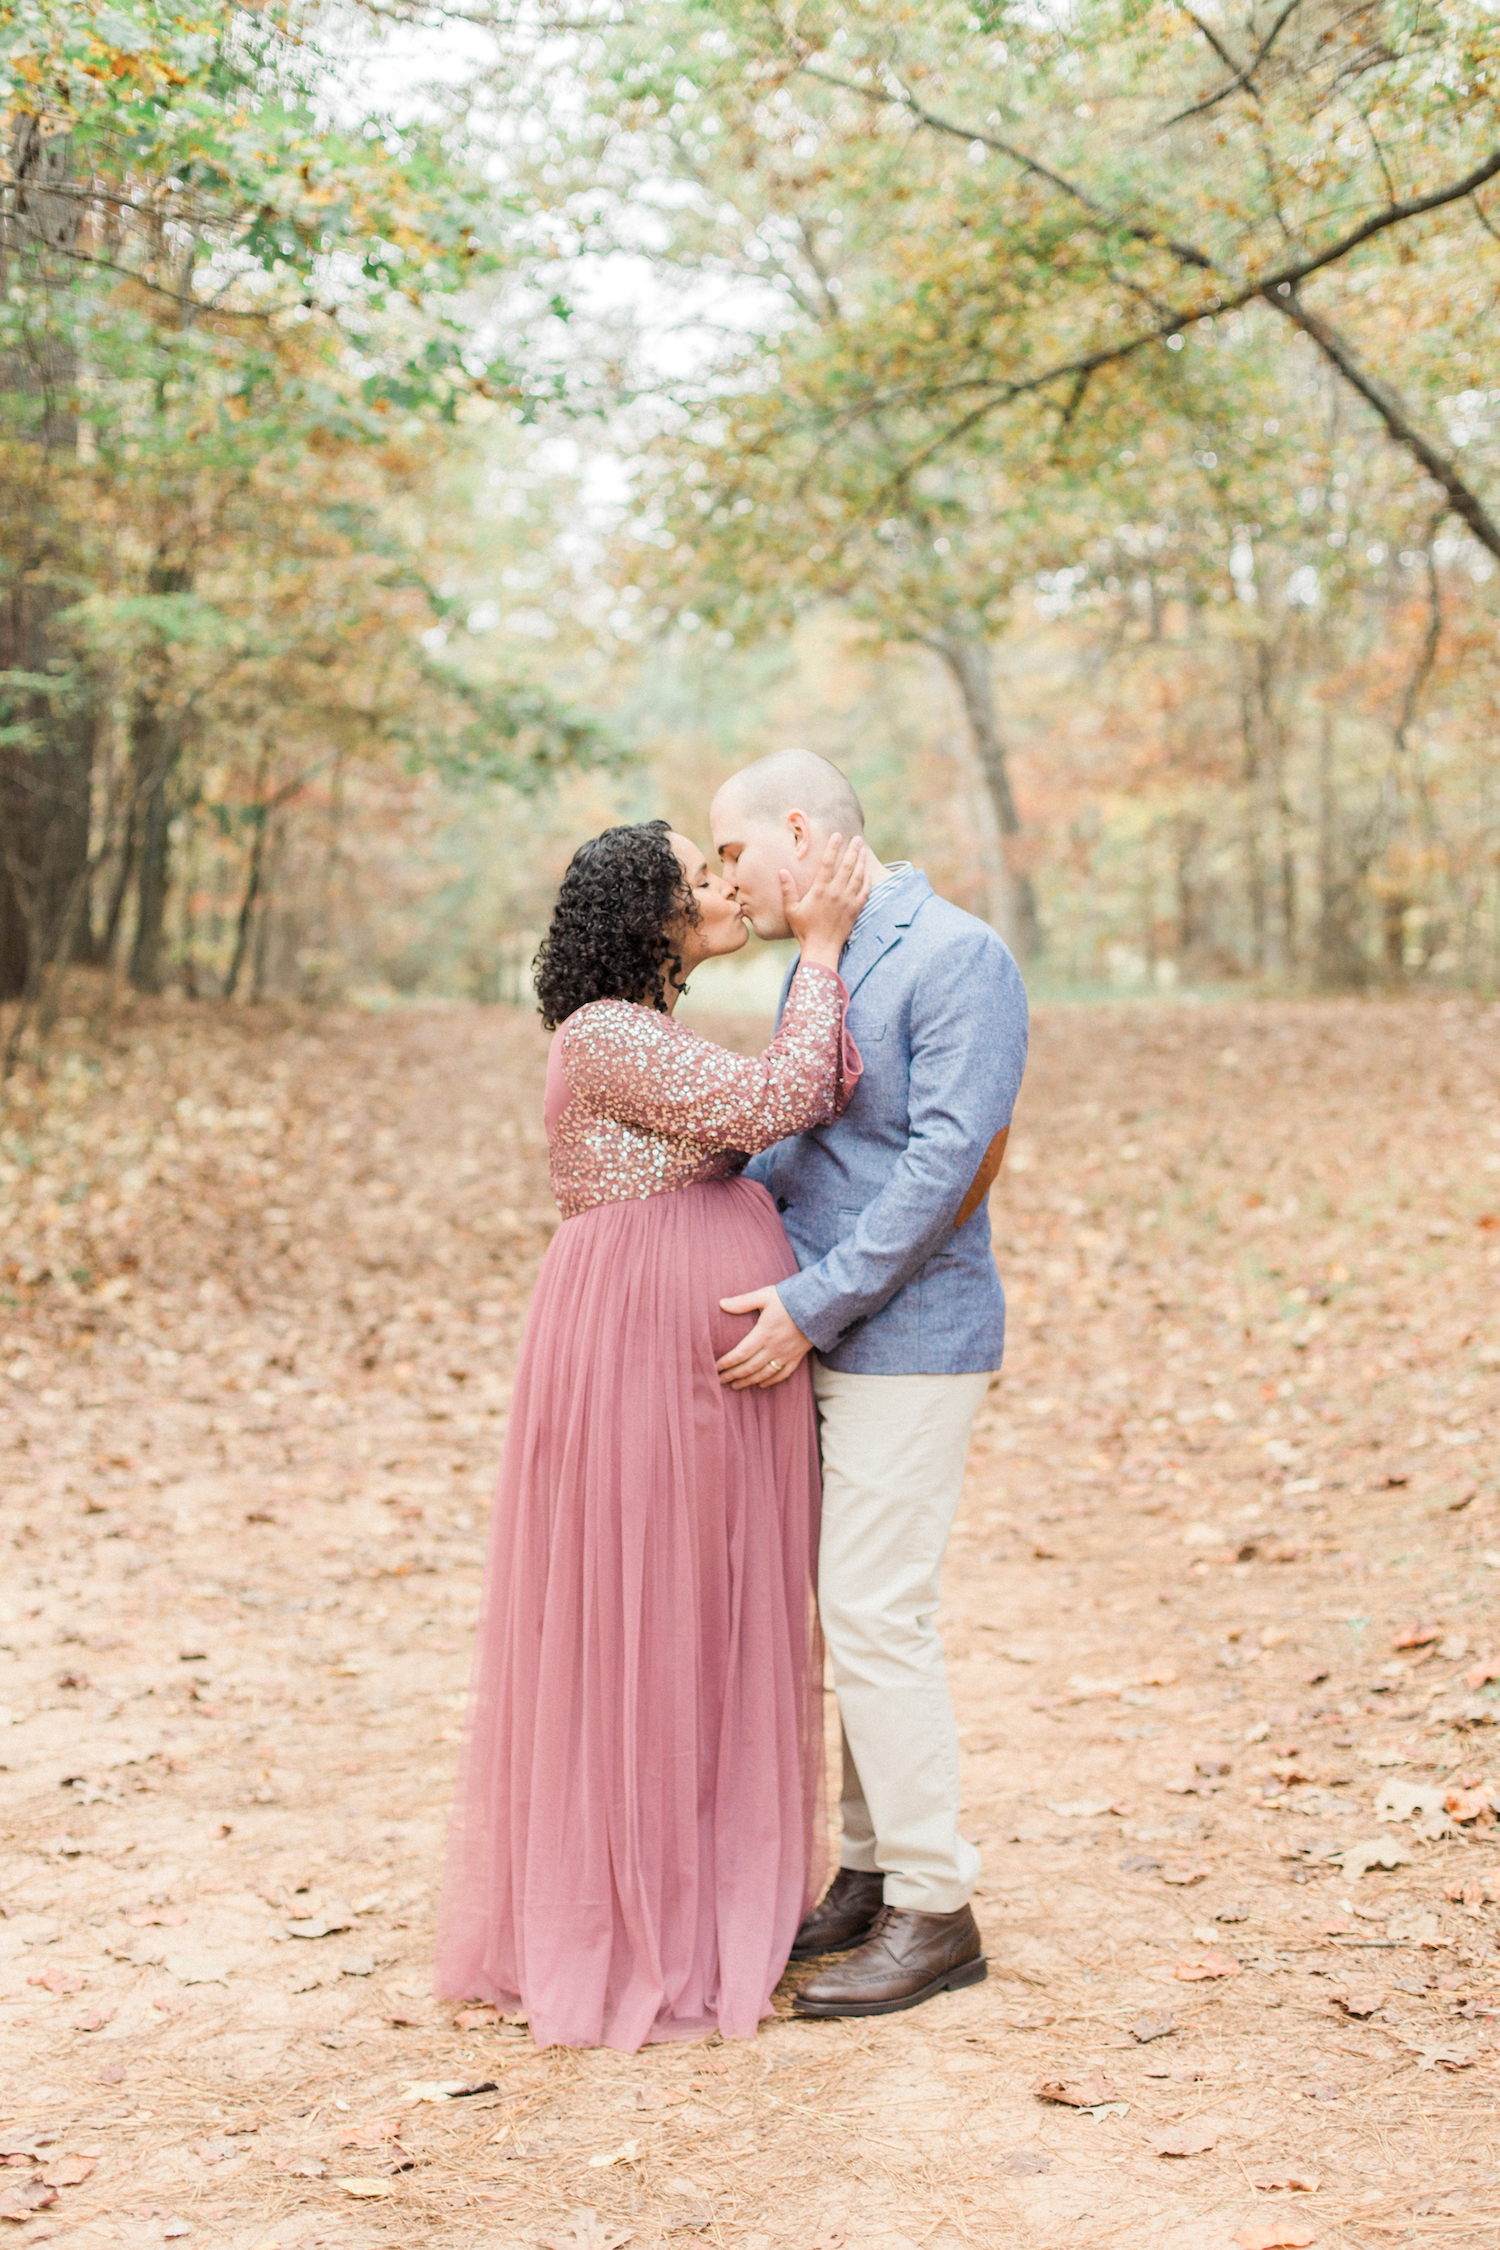 Romantic and organic fall maternity session. Atlanta Fine Art Maternity Photographer.